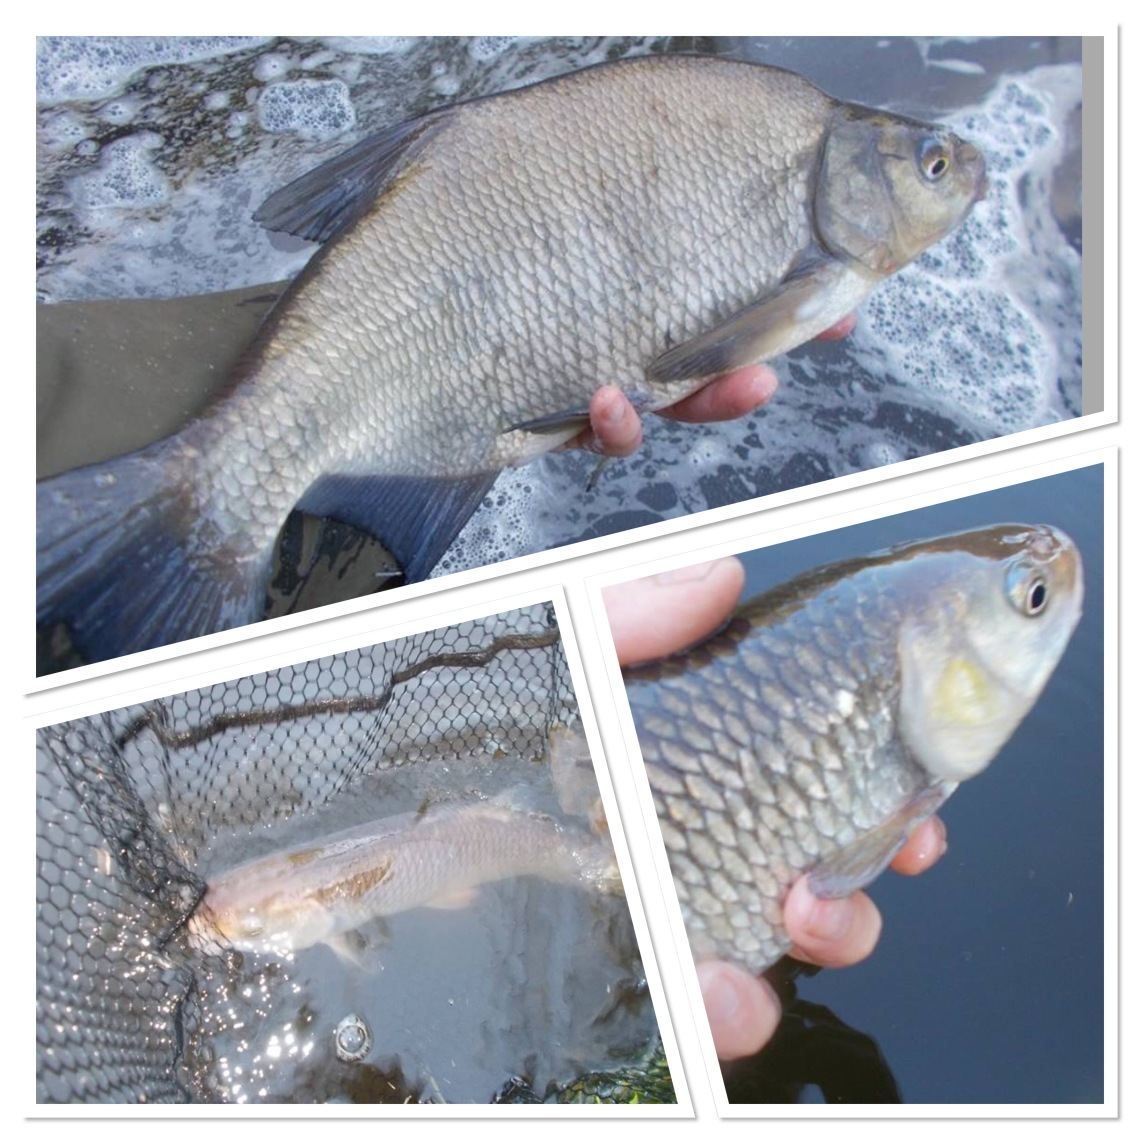 I also caught bream and chub this week